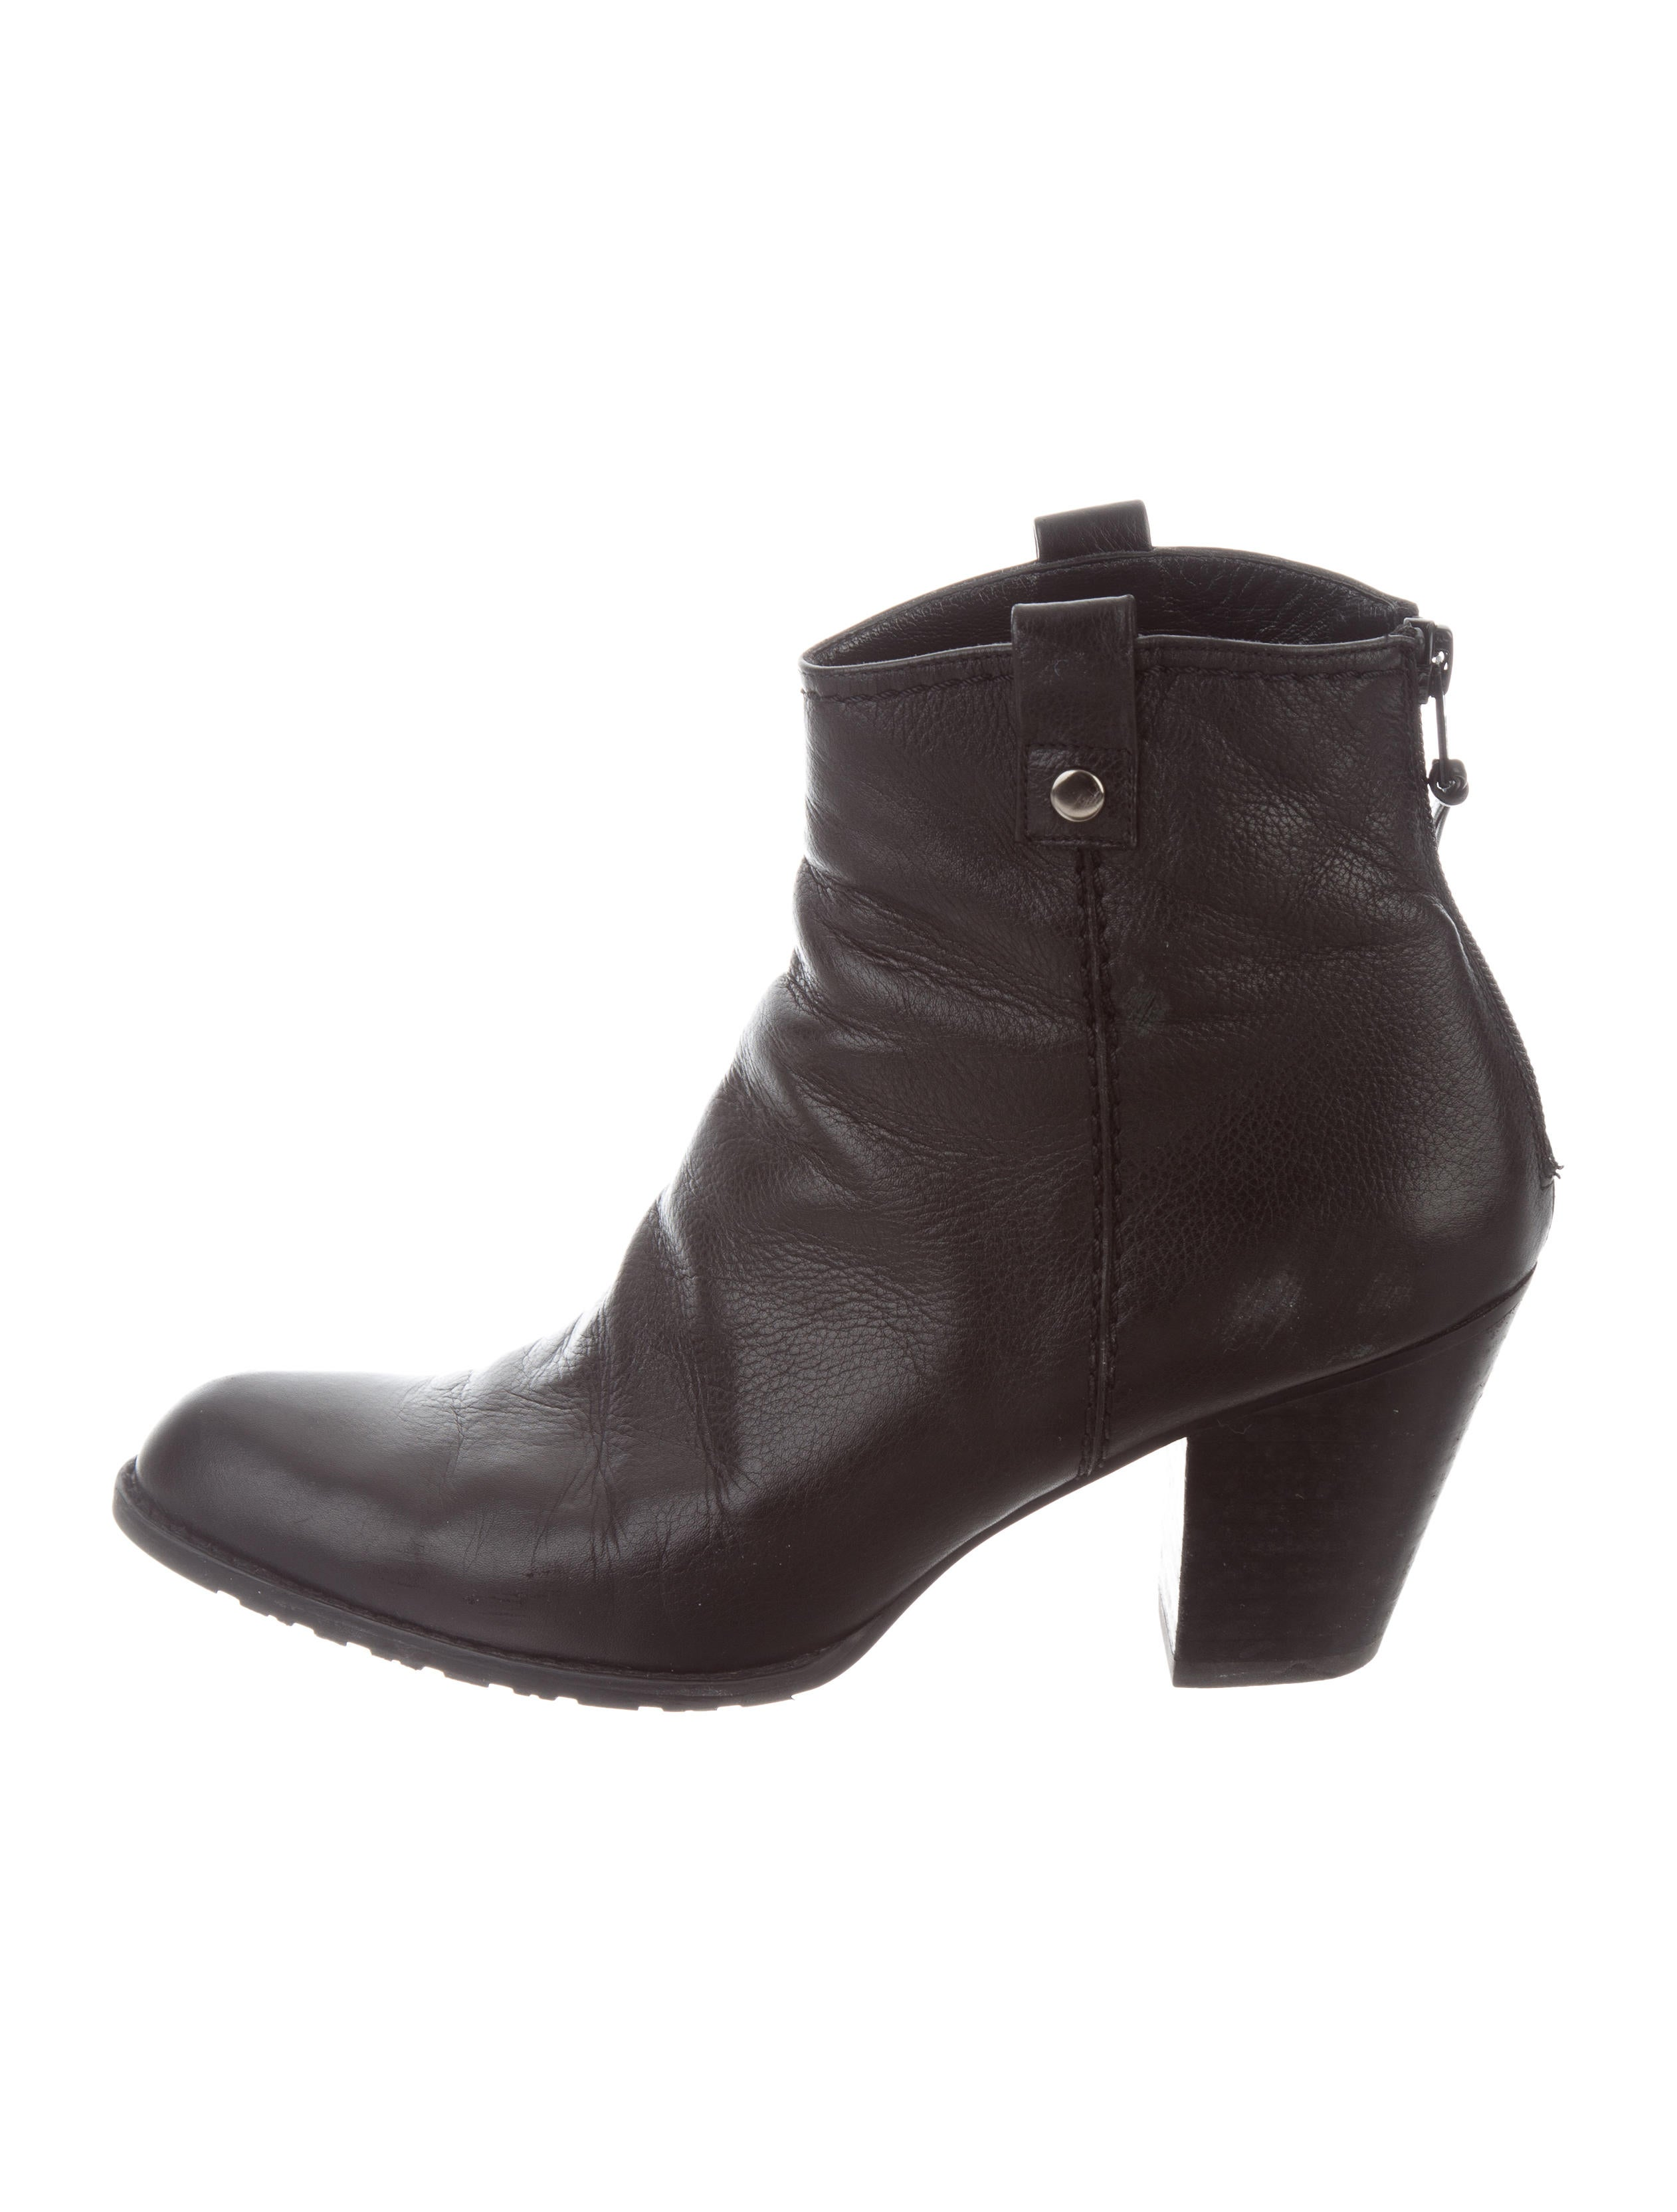 Stuart Weitzman Leather Round-Toe Ankle Boots outlet order under 50 dollars HsHX4QxLG